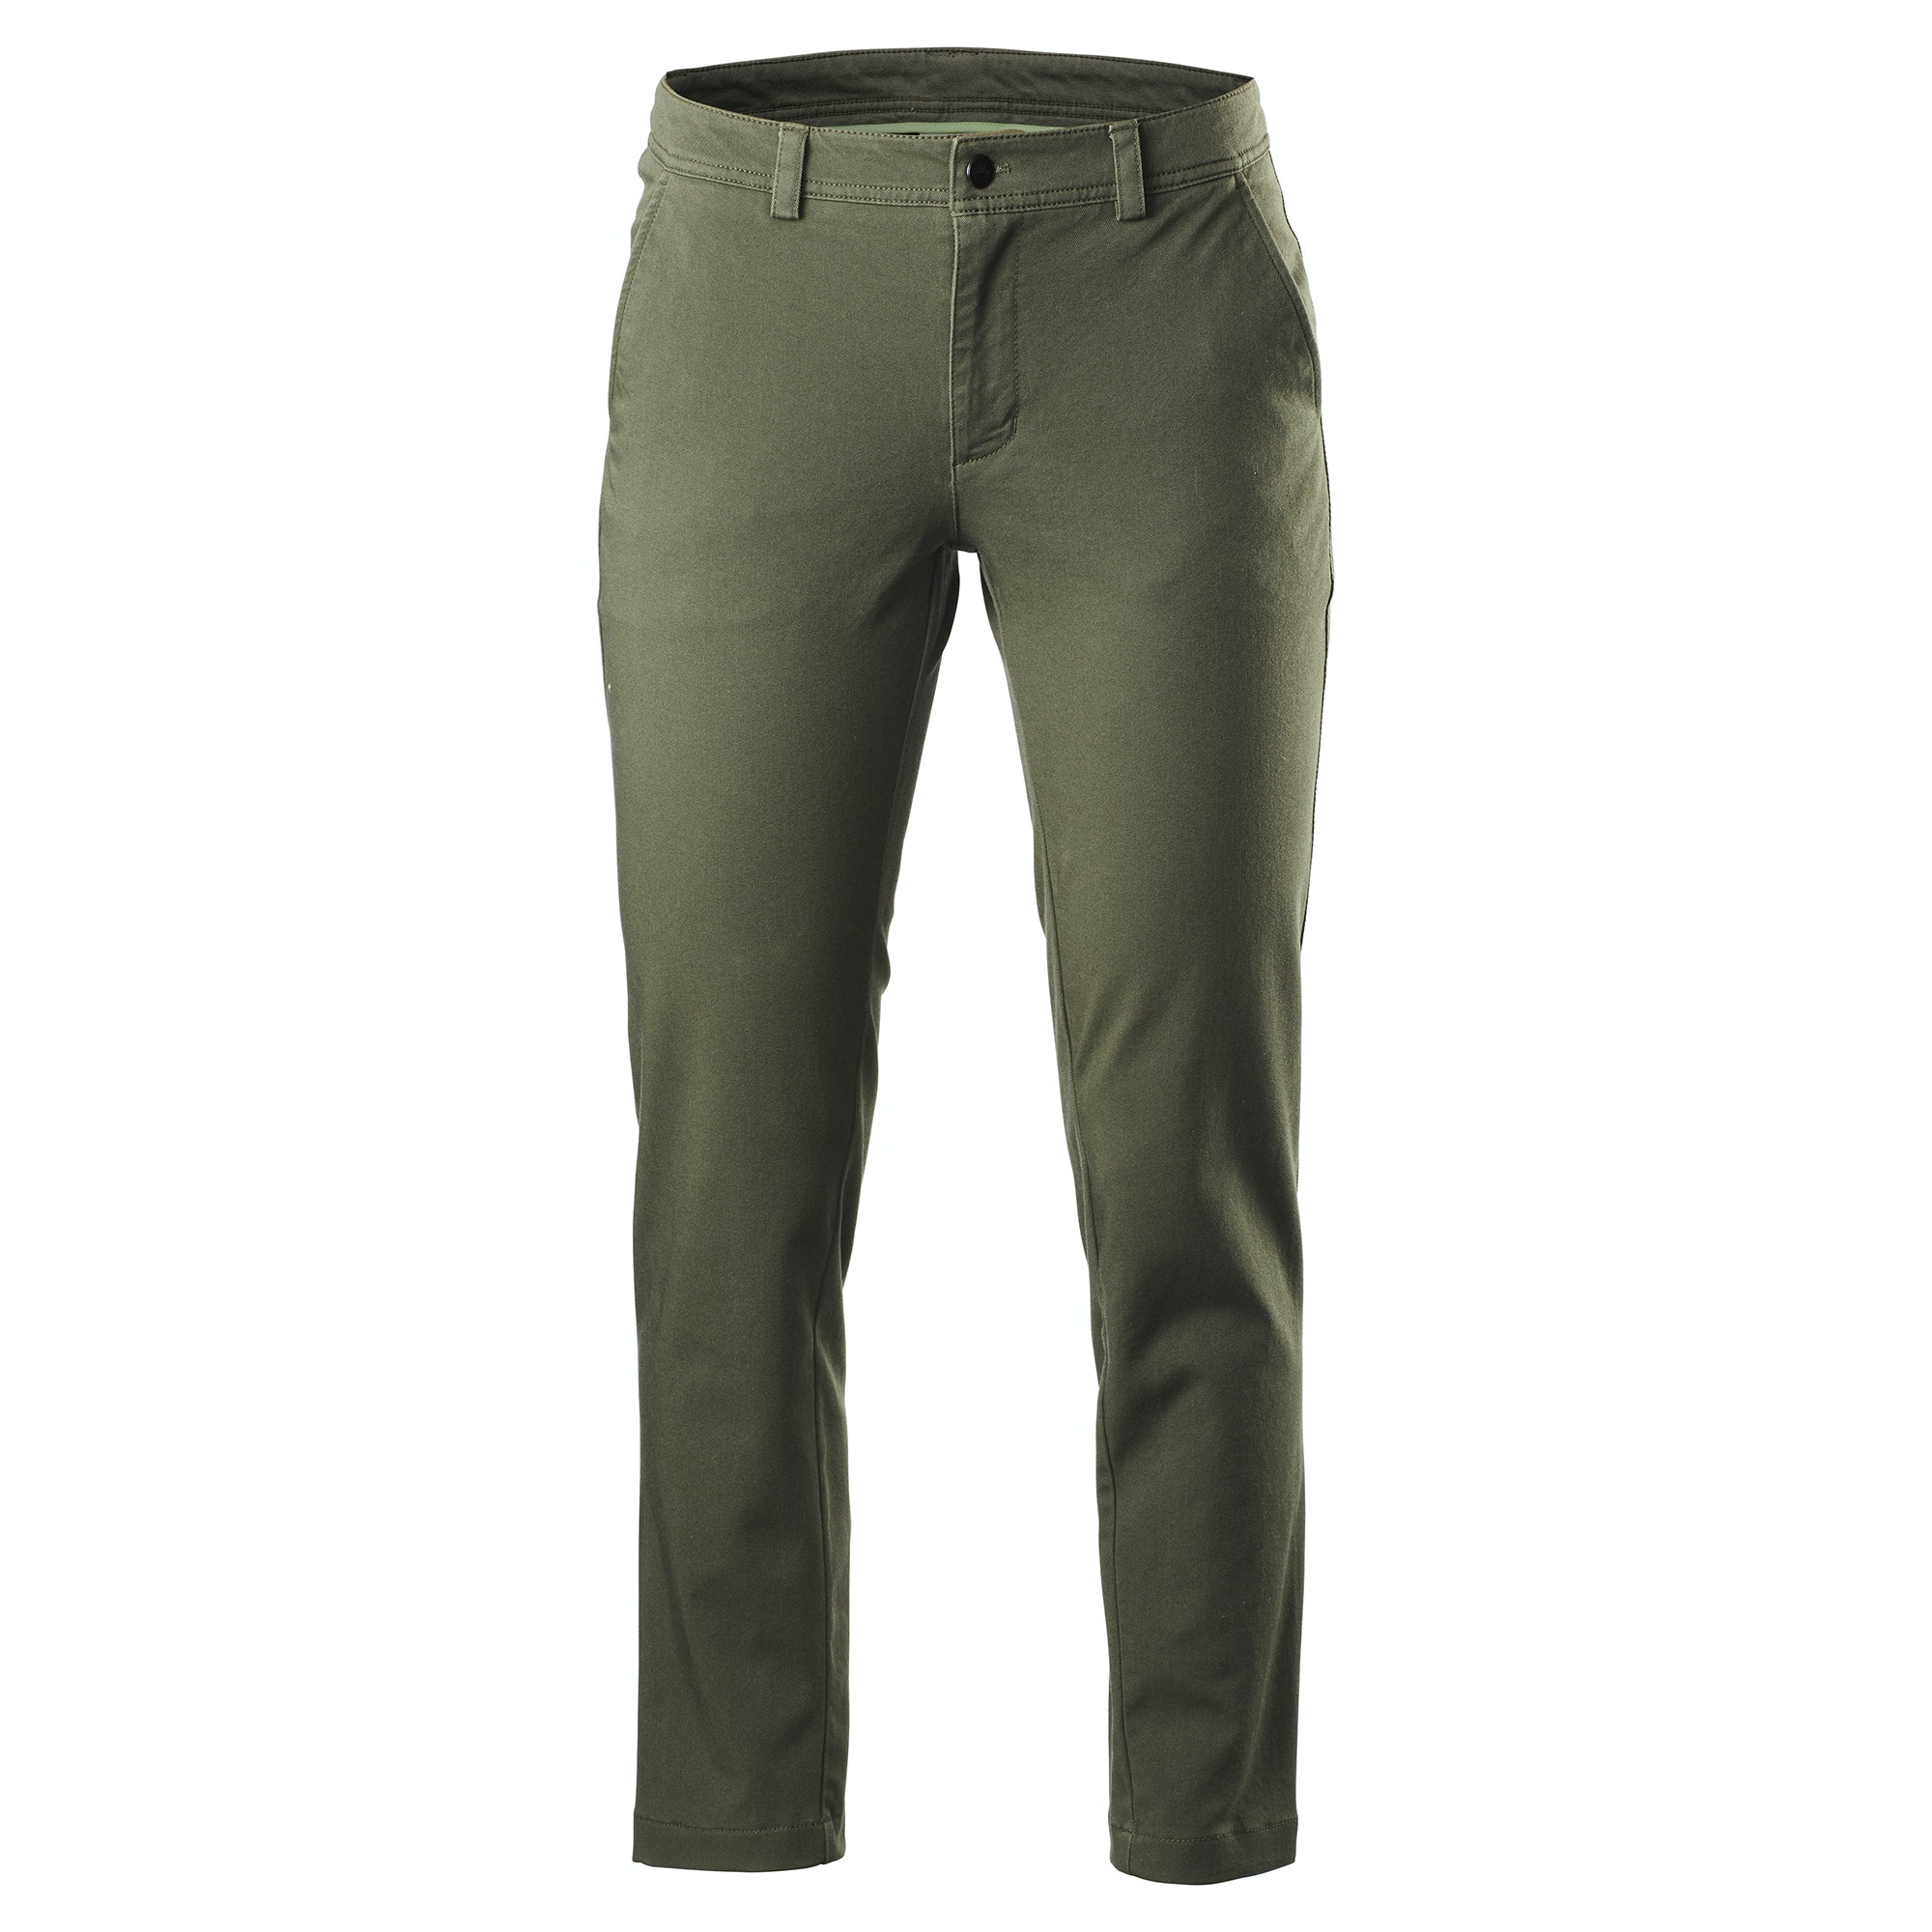 Federate RFIDtech Wmns Pants v2